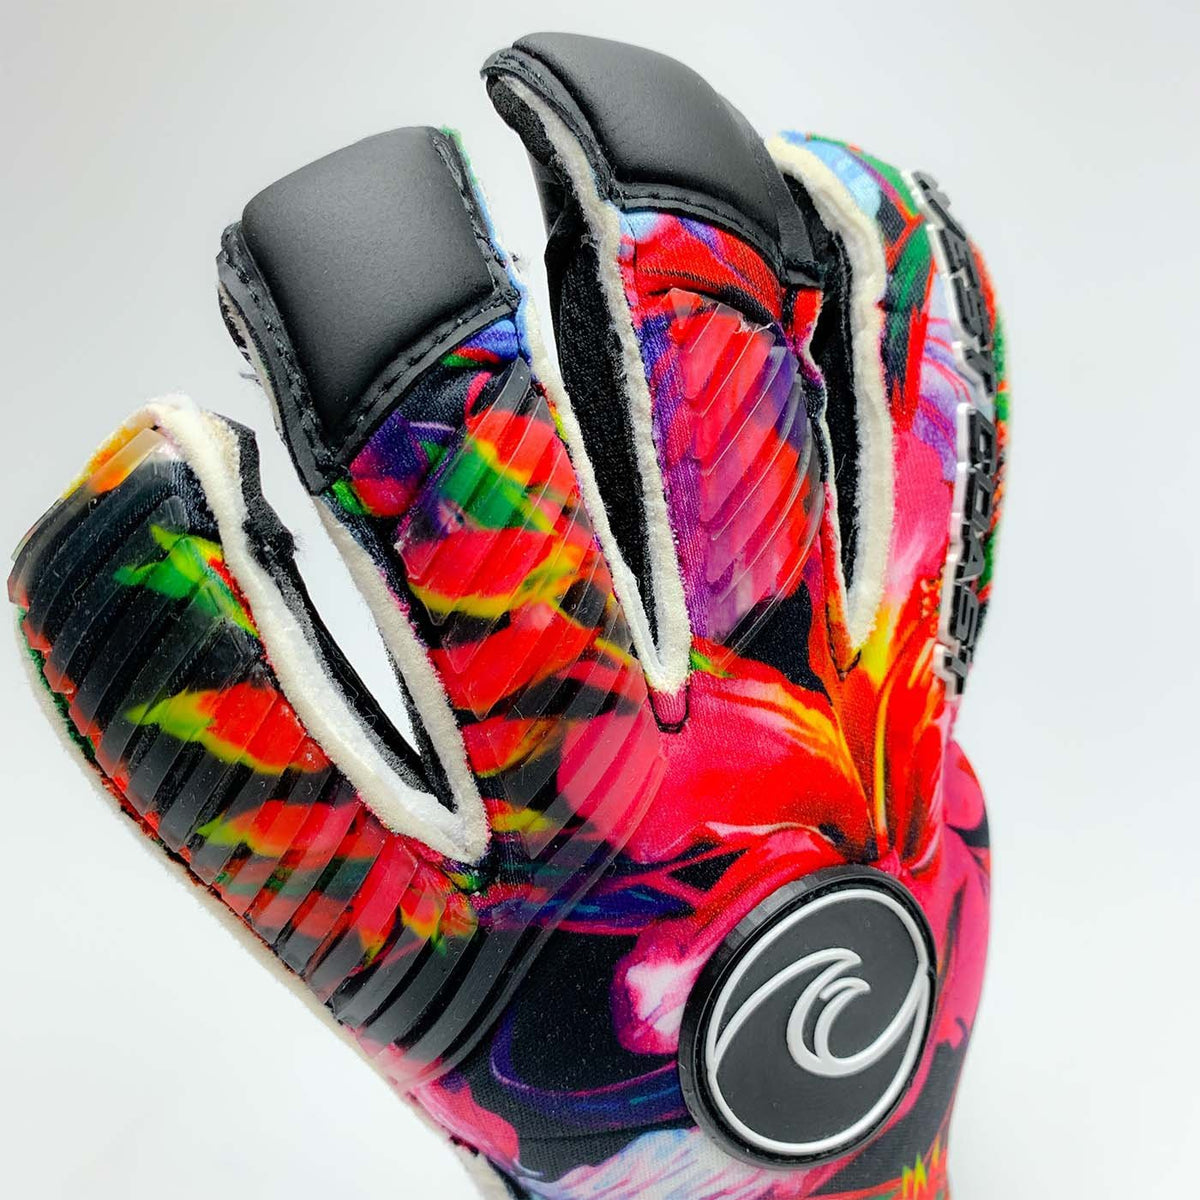 HELIX Aloha - West Coast Goalkeeping